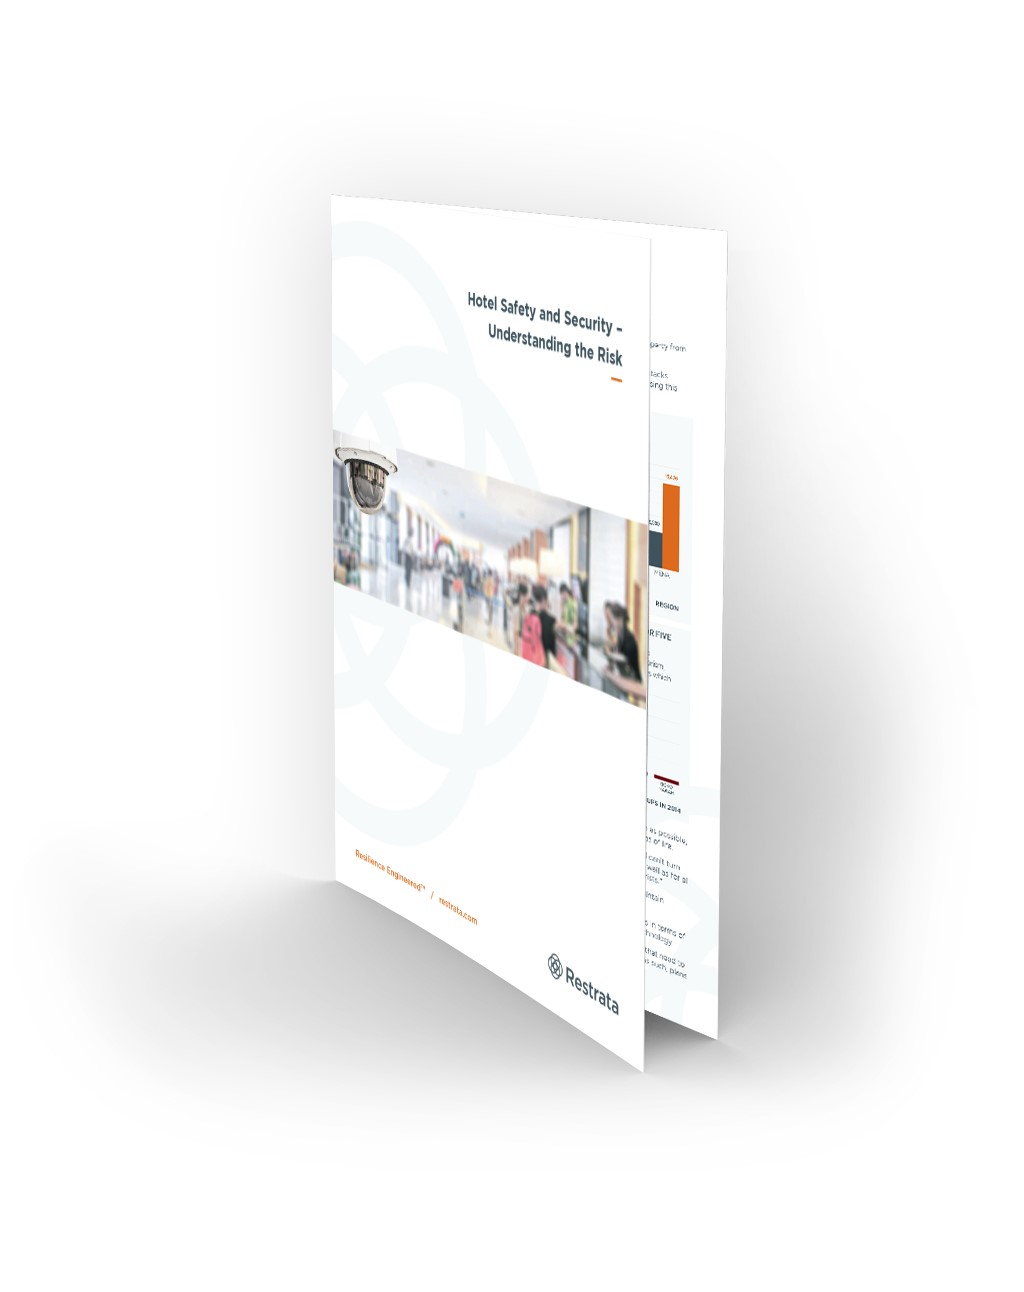 A white paper on how to protect guests, employees and the physical assets of the property from emergency situations.